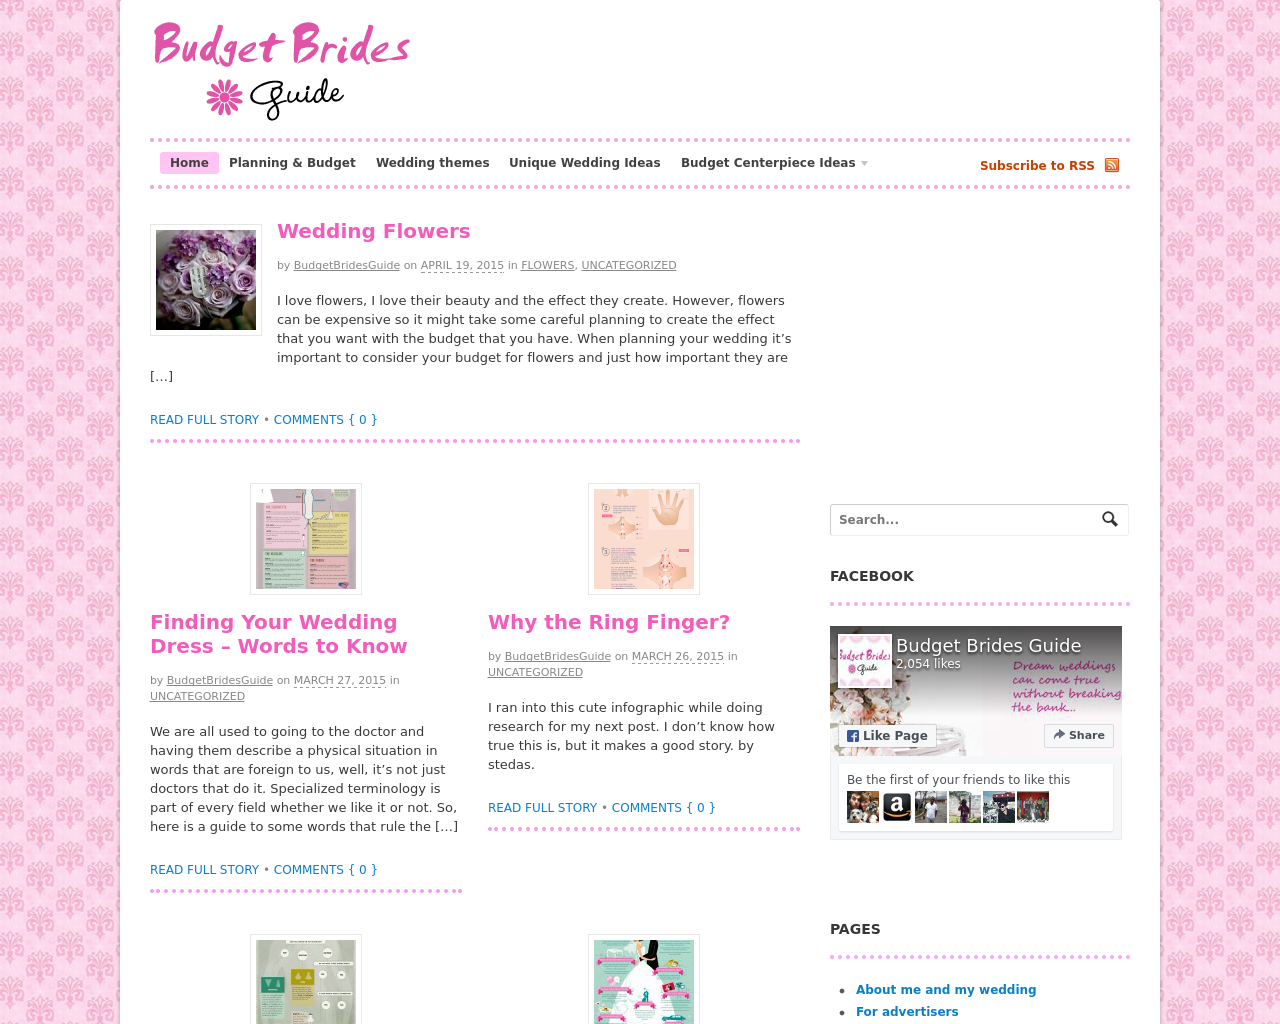 Budget-Brides-Guide-Advertising-Reviews-Pricing